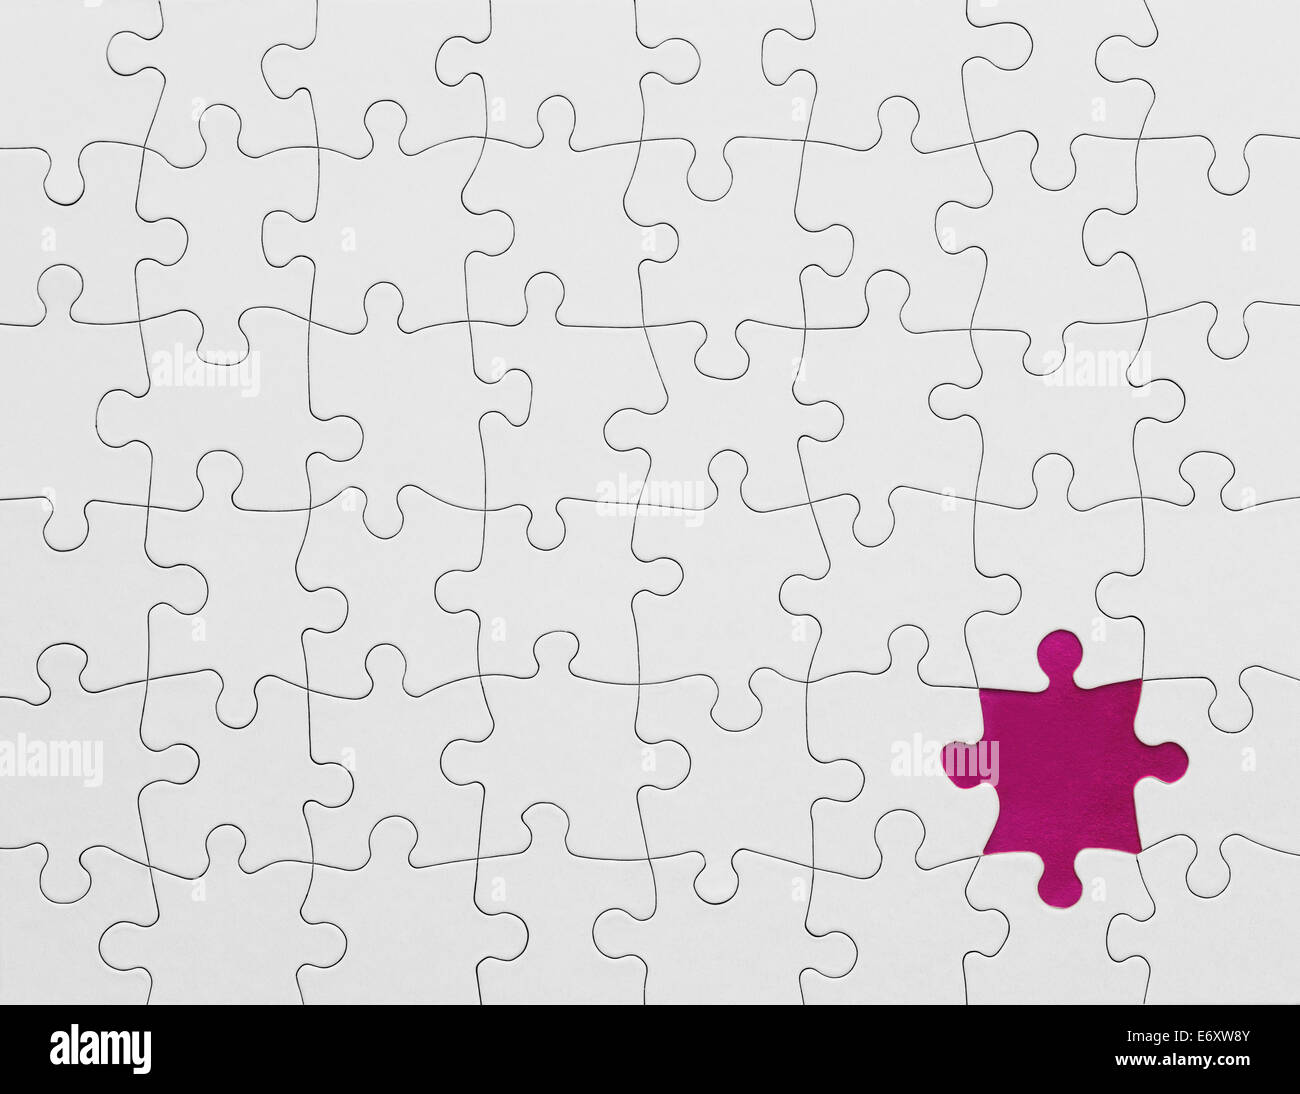 Blank Puzzle with Missing Piece in Pink. - Stock Image